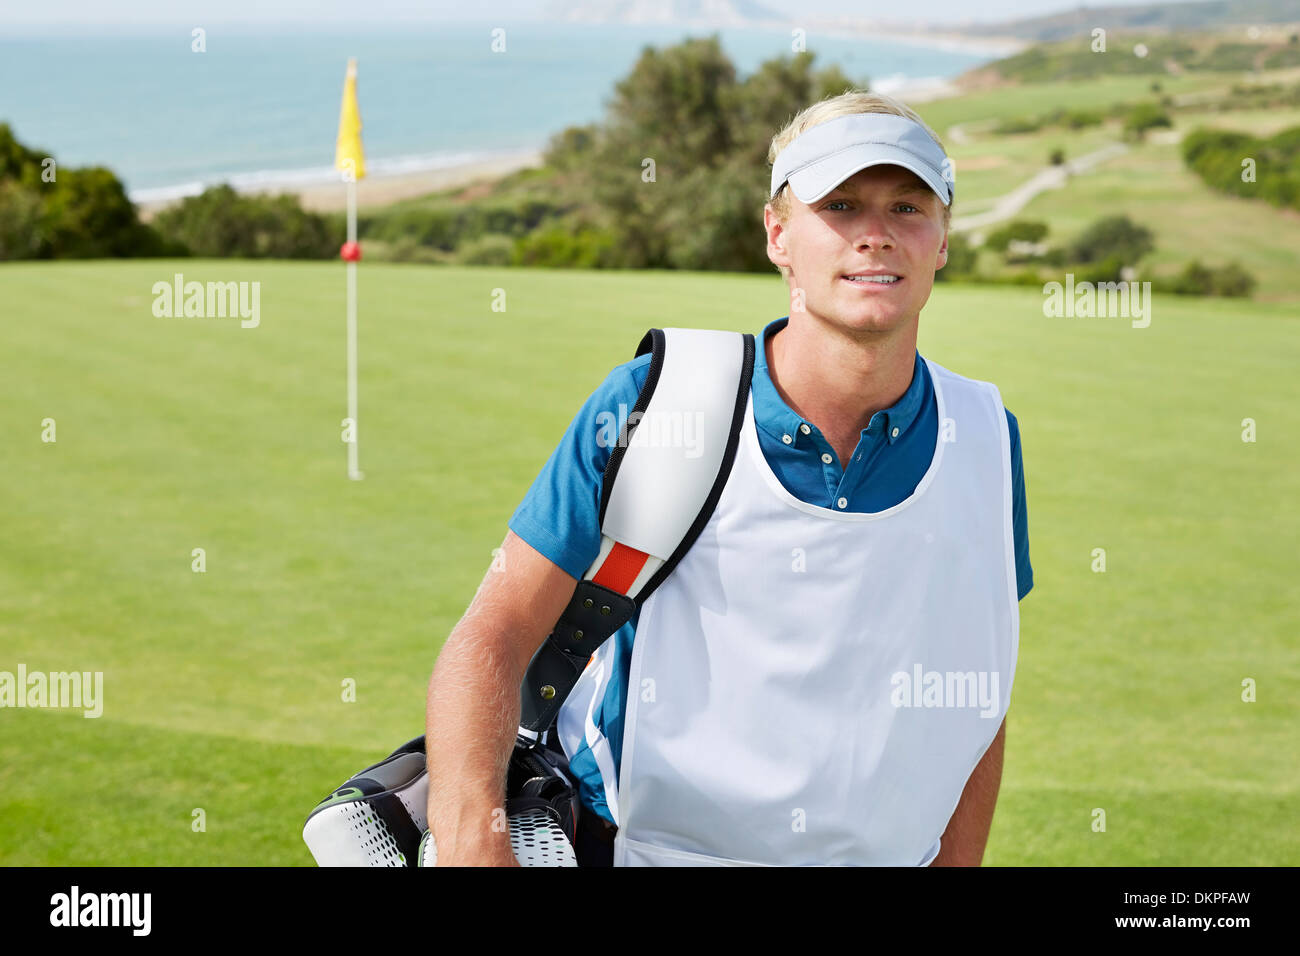 Caddy smiling on golf course Photo Stock